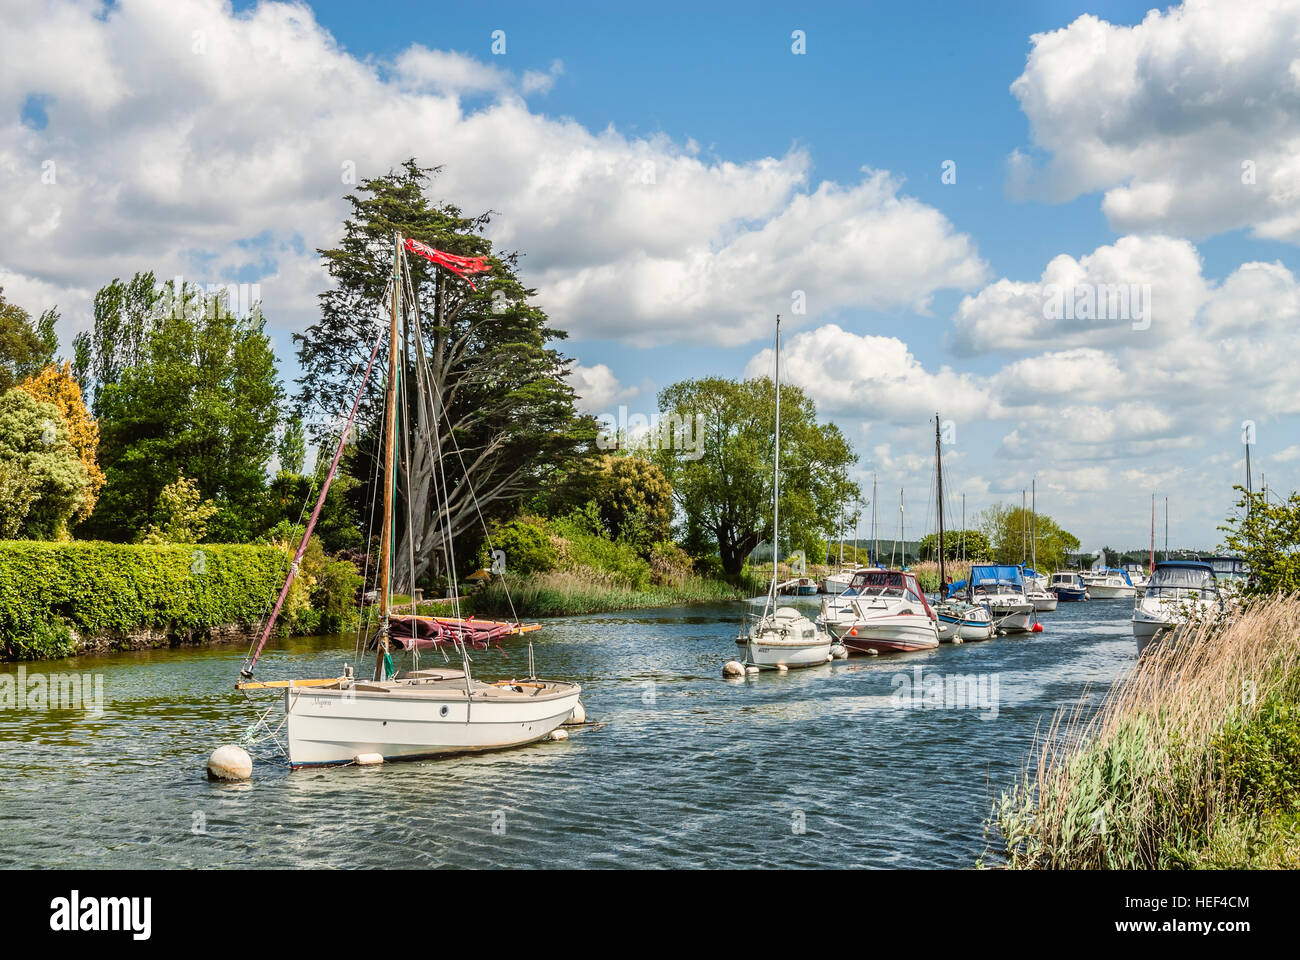 Sailing ship on the River Frome near Wareham with the Lady St.Mary church in the background, Dorset, South East - Stock Image